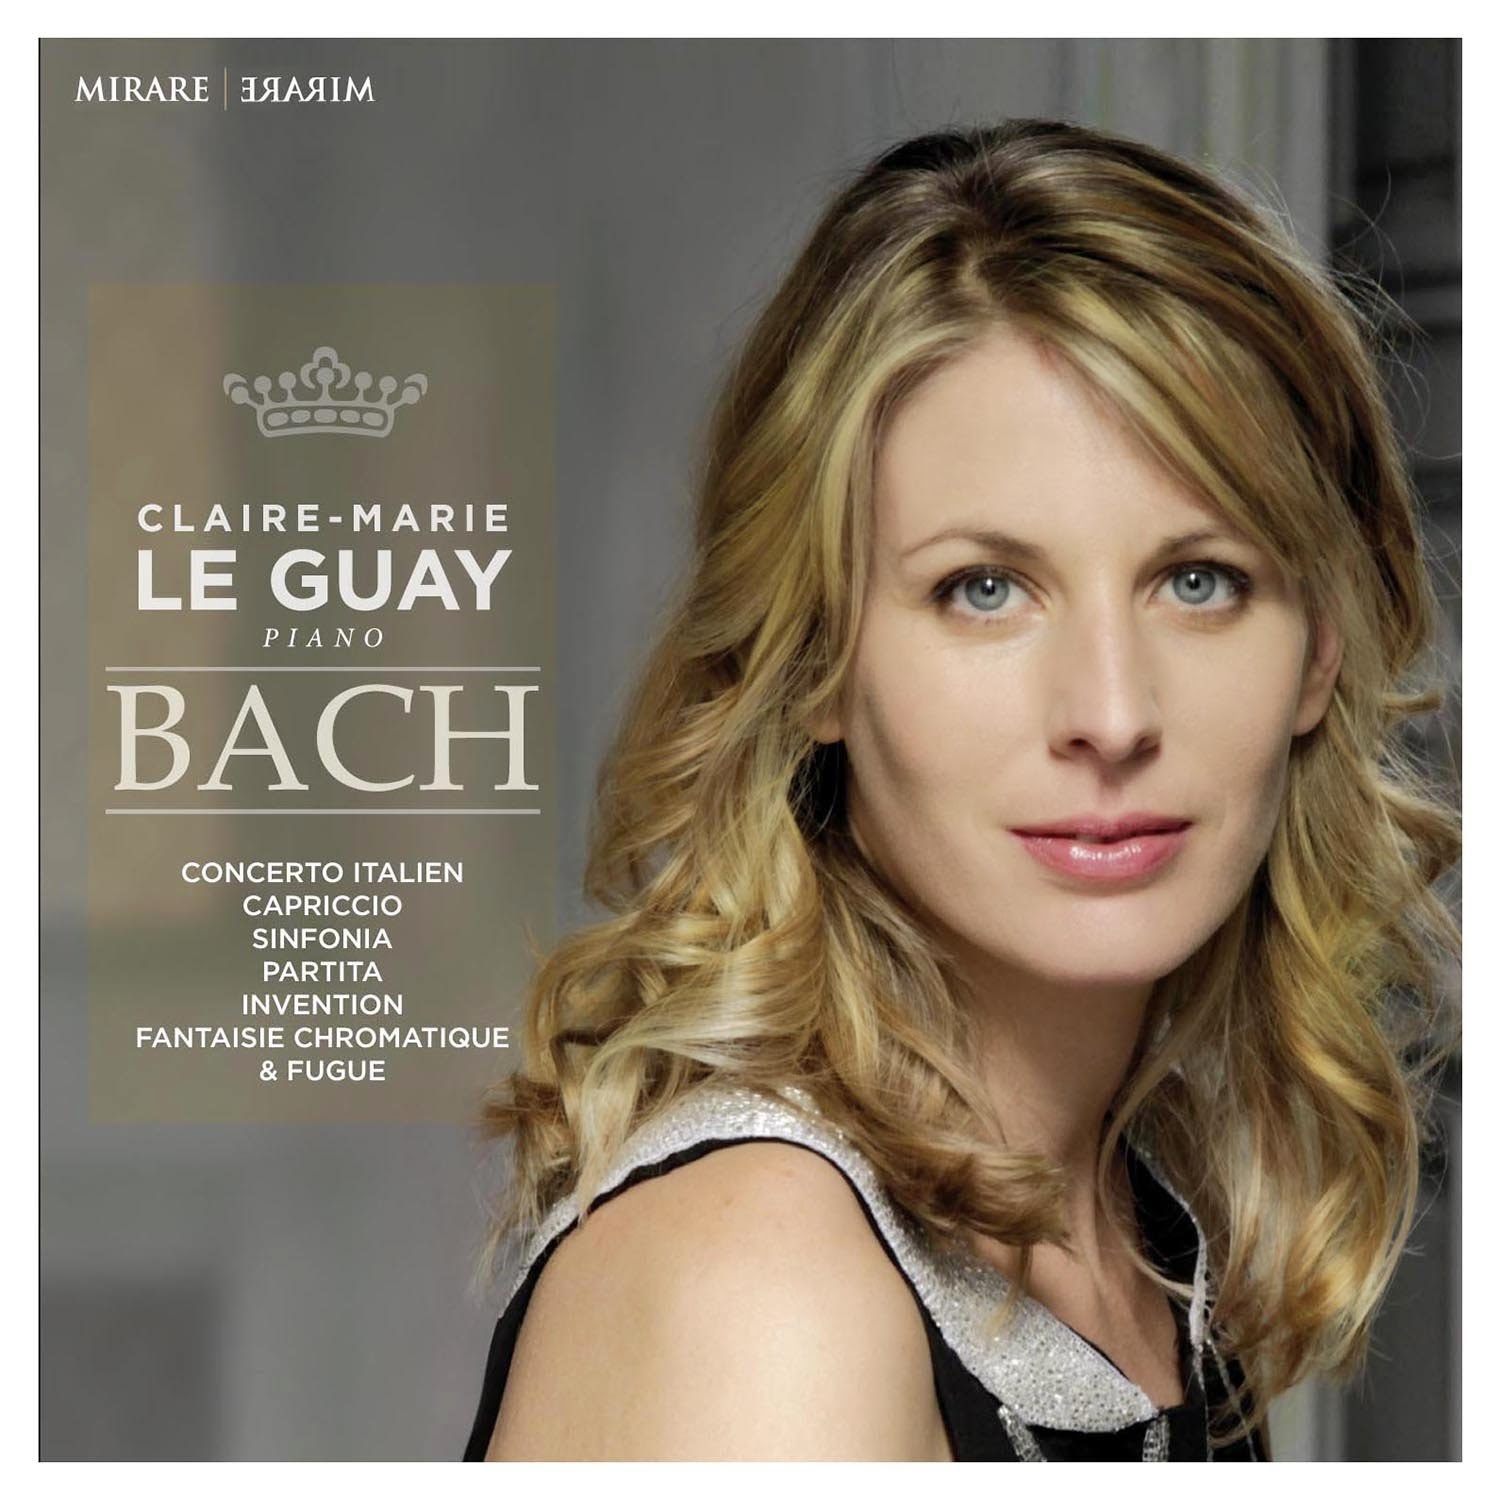 Andrea Schäfer Cobra 11 music is the key: claire-marie le guay bach